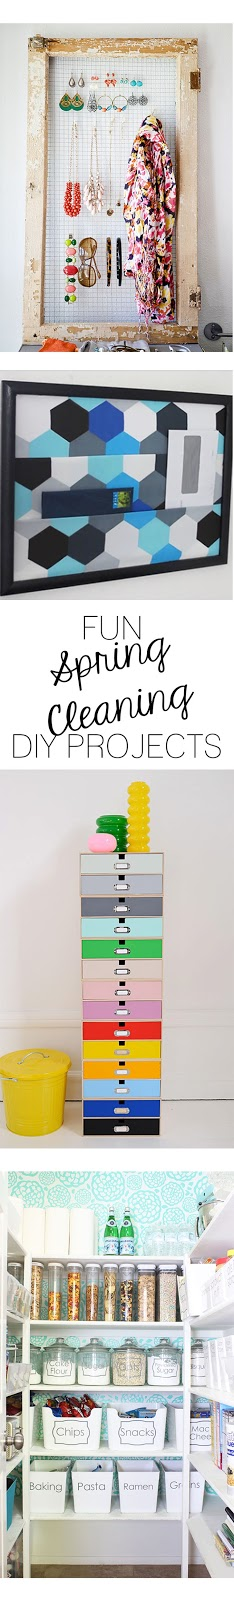 Are you wanting to get things more in order this spring? Check out this list of fun DIY projects that will help you keep things tidy while spring cleaning!